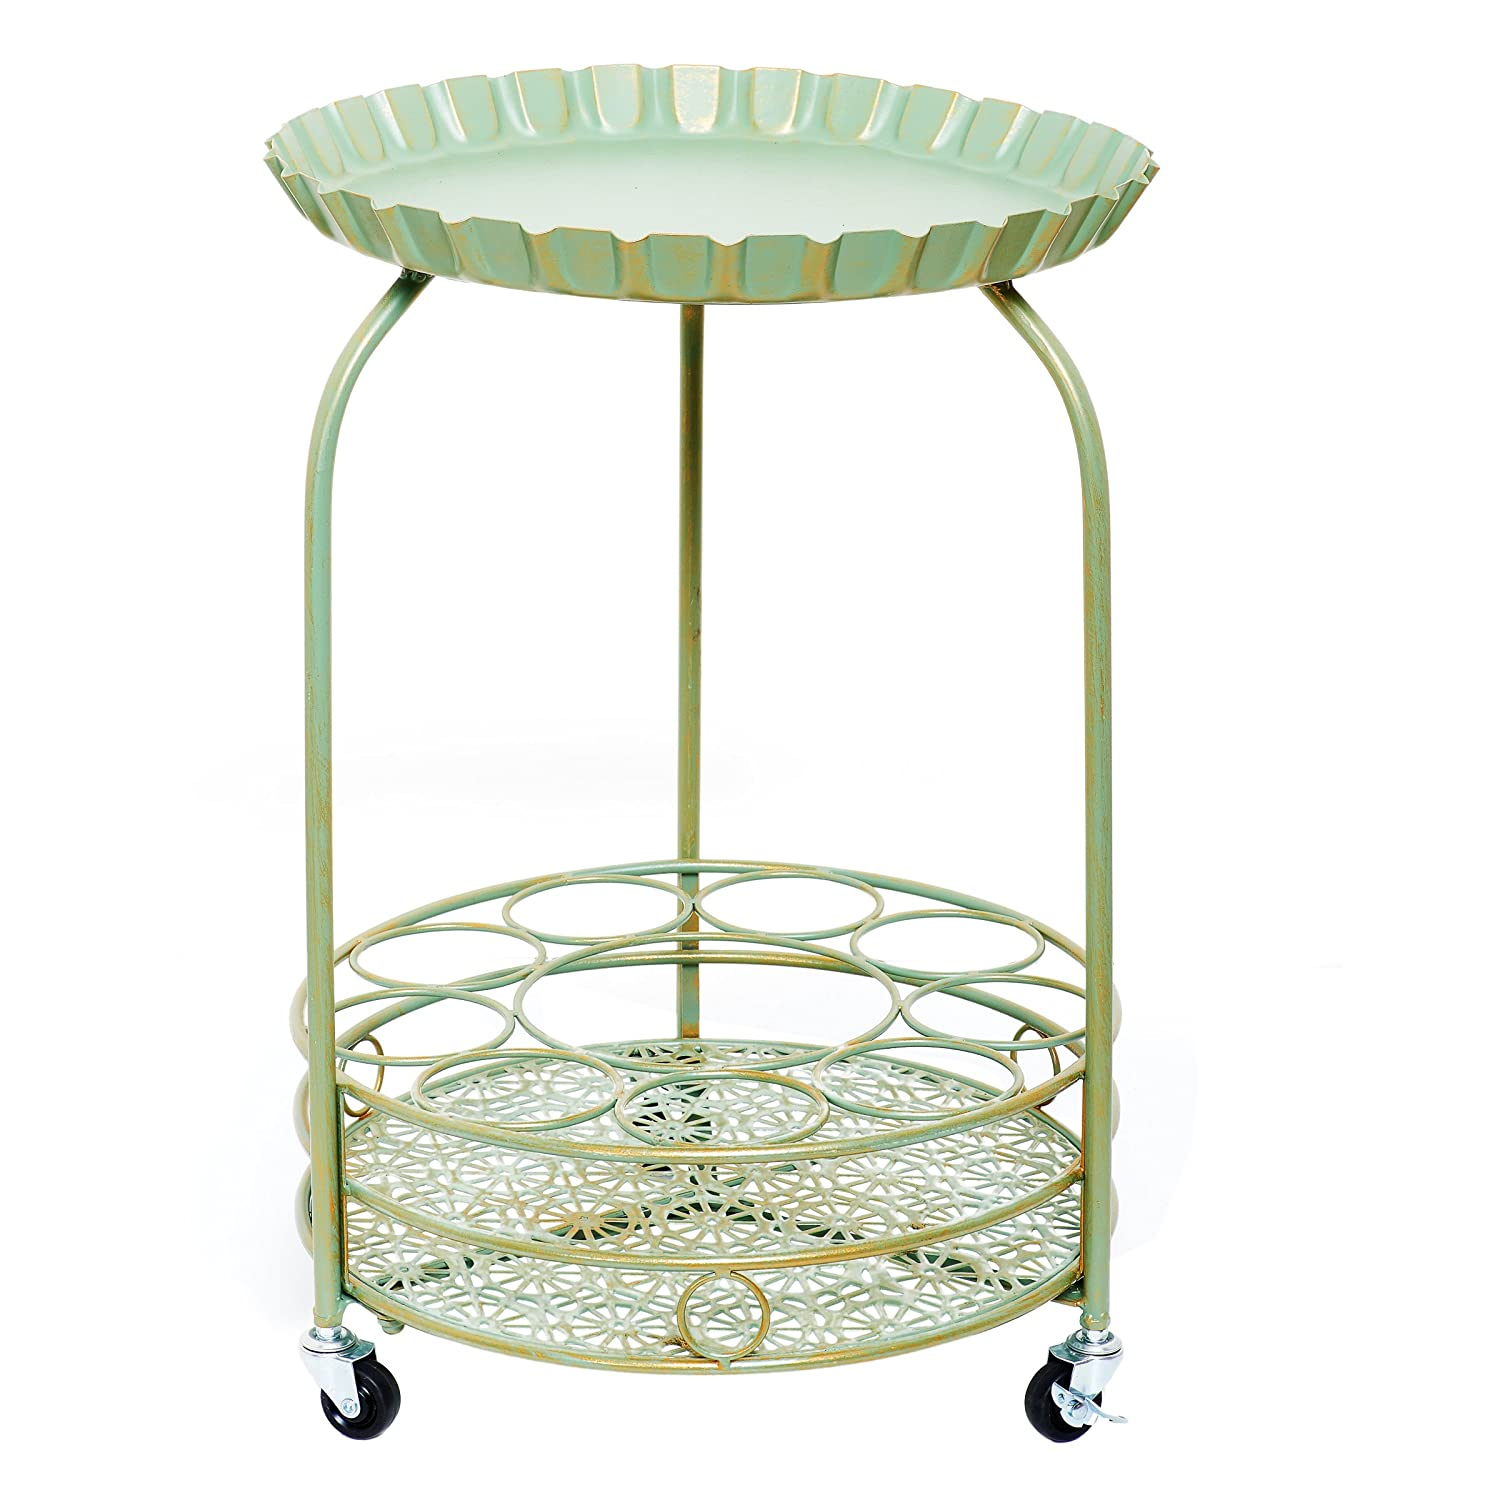 Old Dutch 615GG Pop Wine & Serving Cart, 17 x 17 x 25.5, Verdigris and Gold